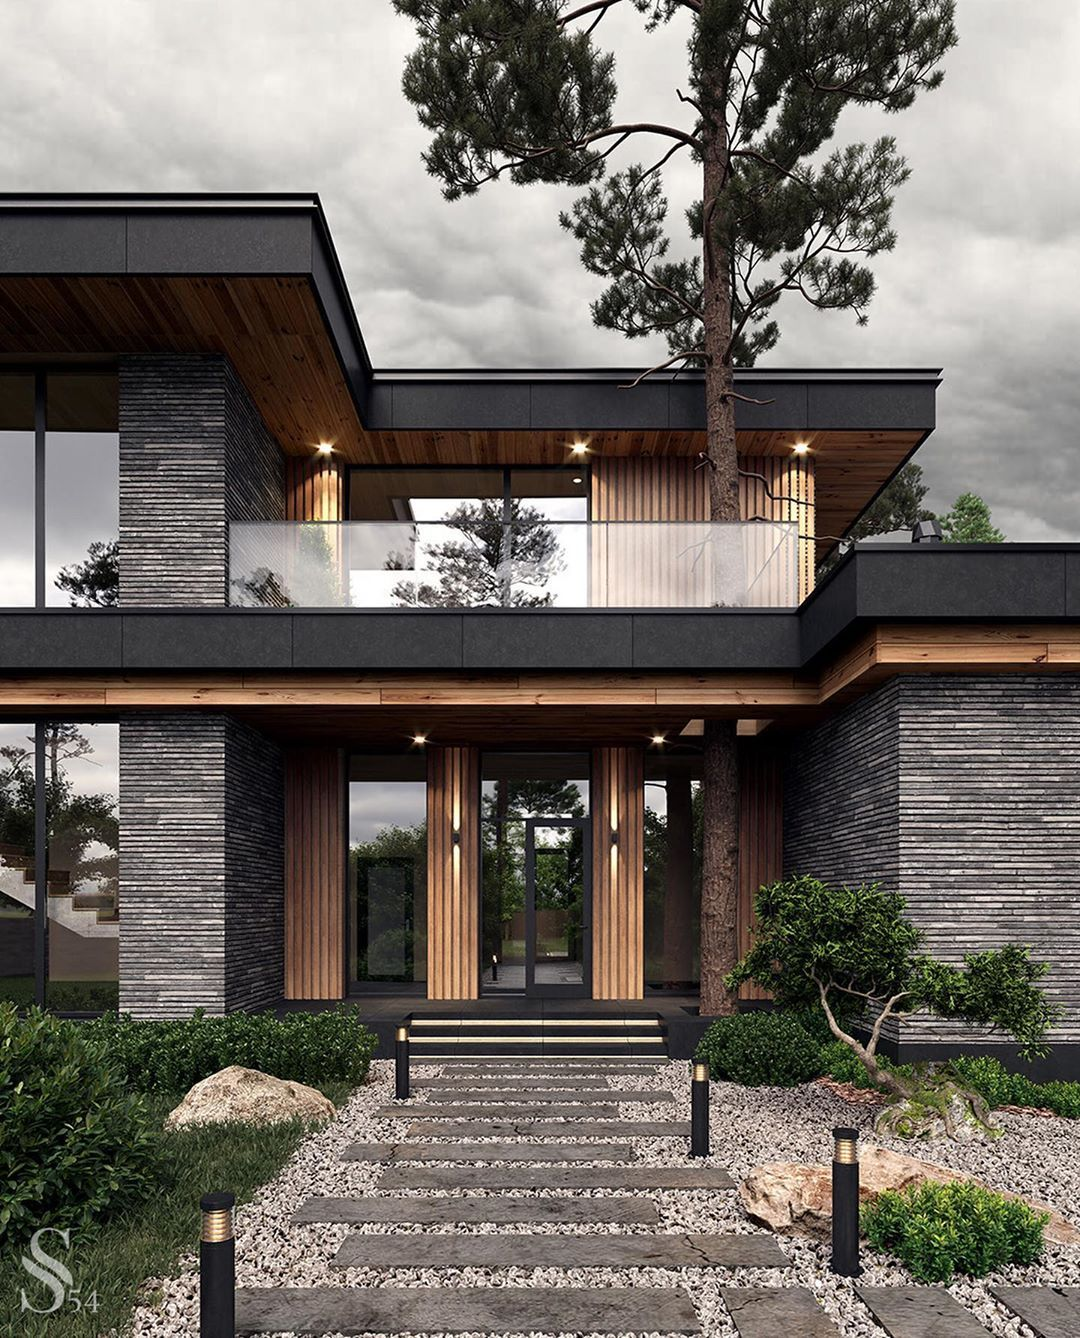 Top Projects by Studia 54